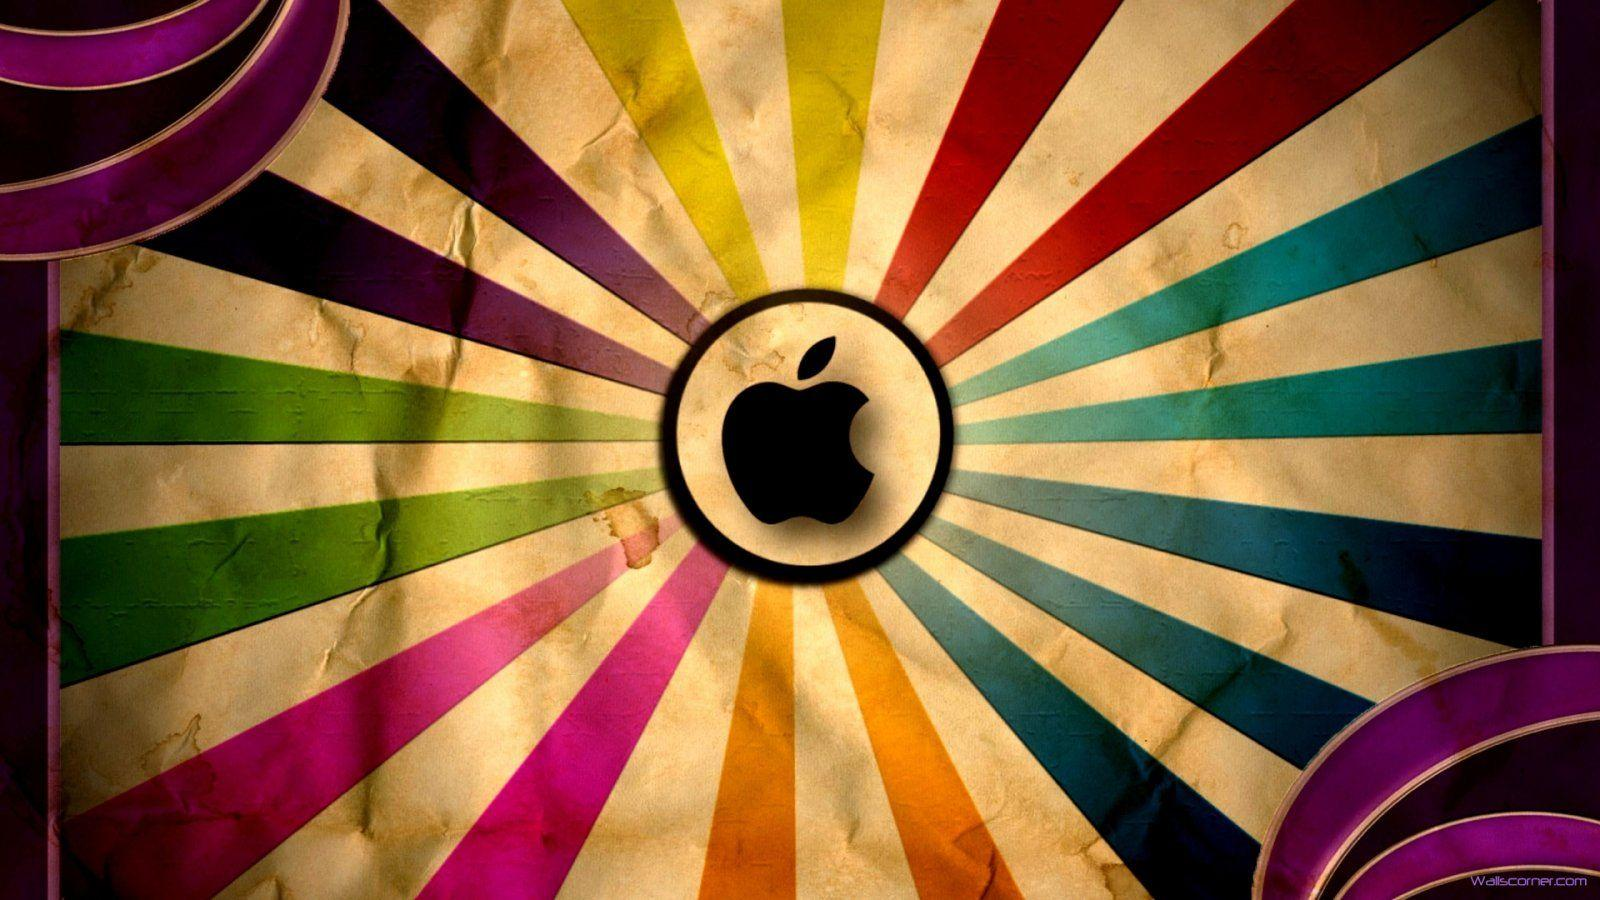 Wallpapers For > Apple Wallpapers Hd 1080p Download